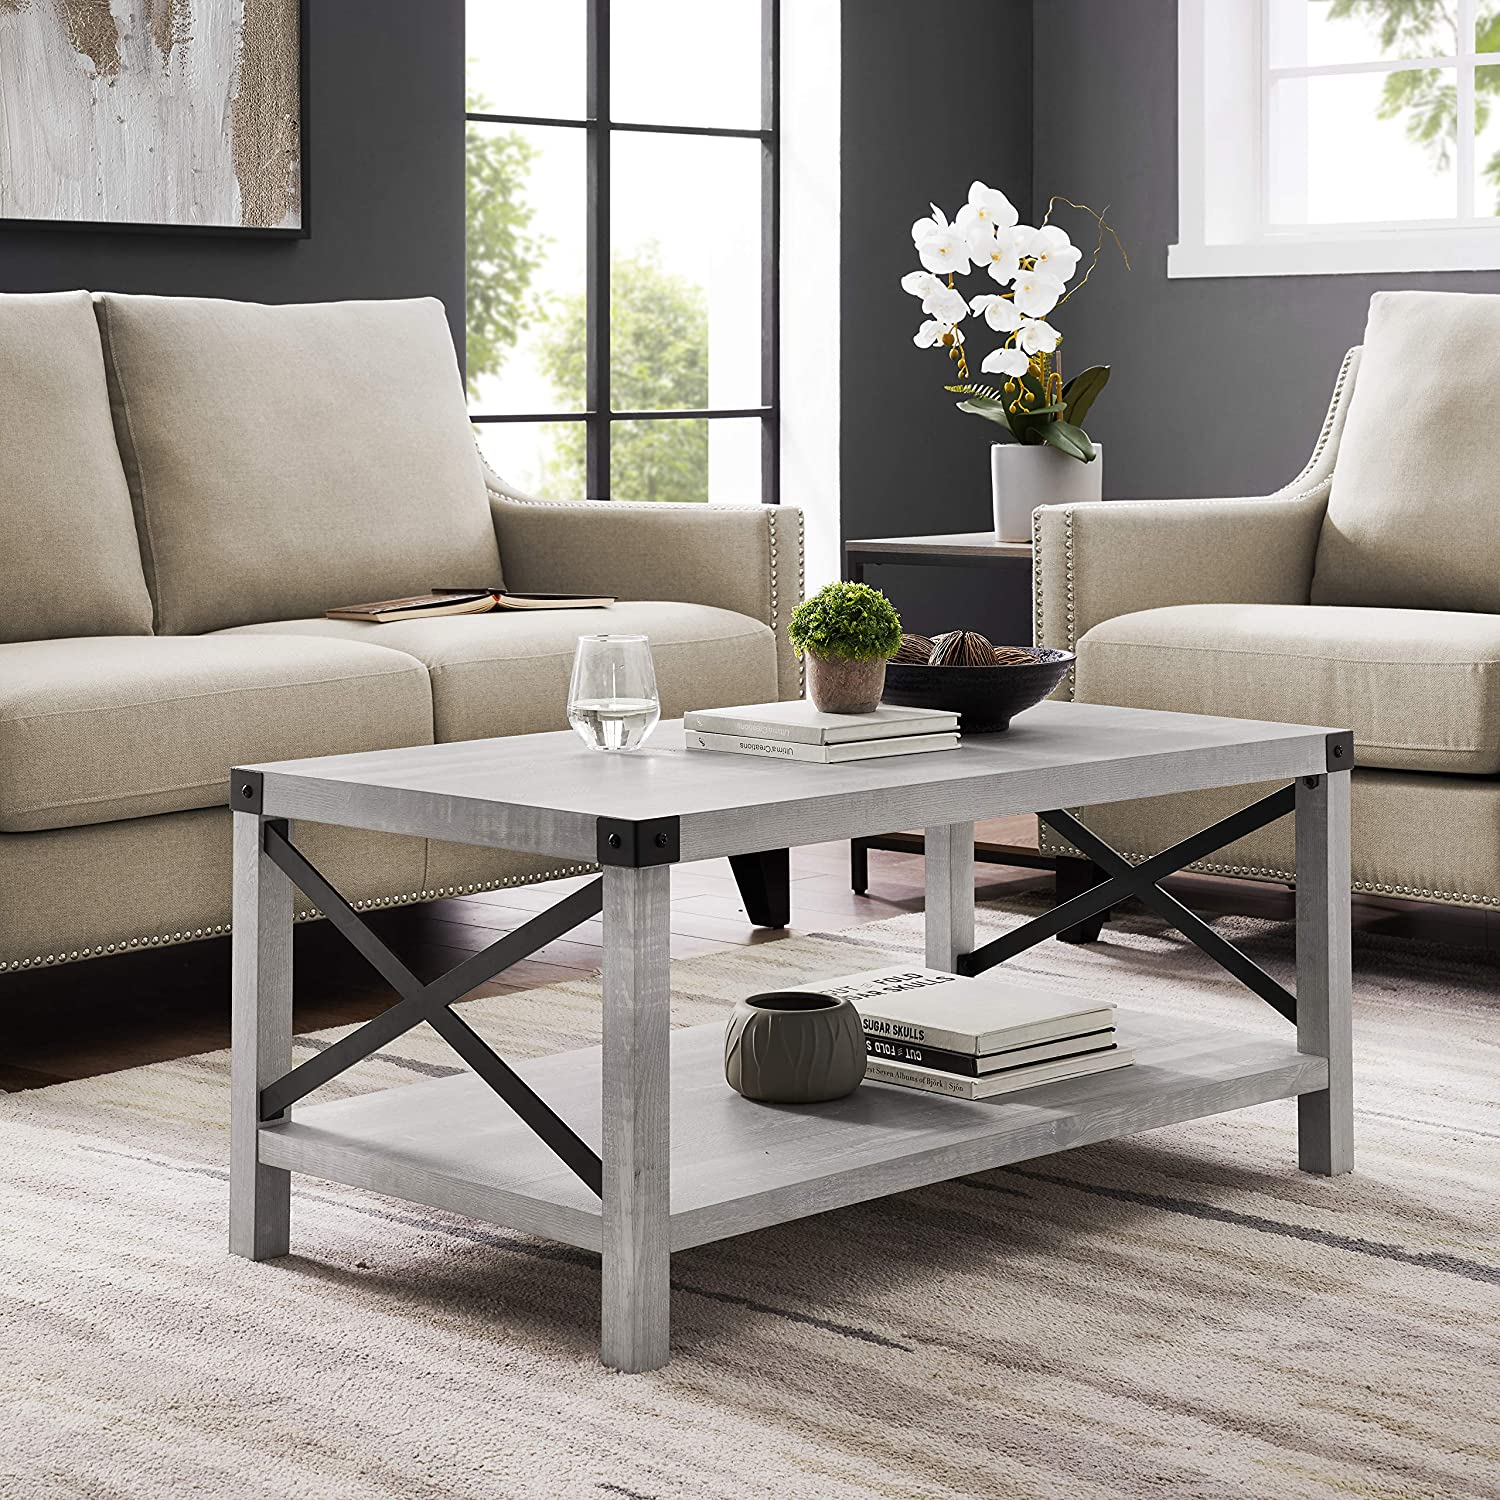 """WE Furniture AZF40MXCTST Modern Farmhouse Coffee Table with Storage for Living Room, 40"""", Stone Grey"""